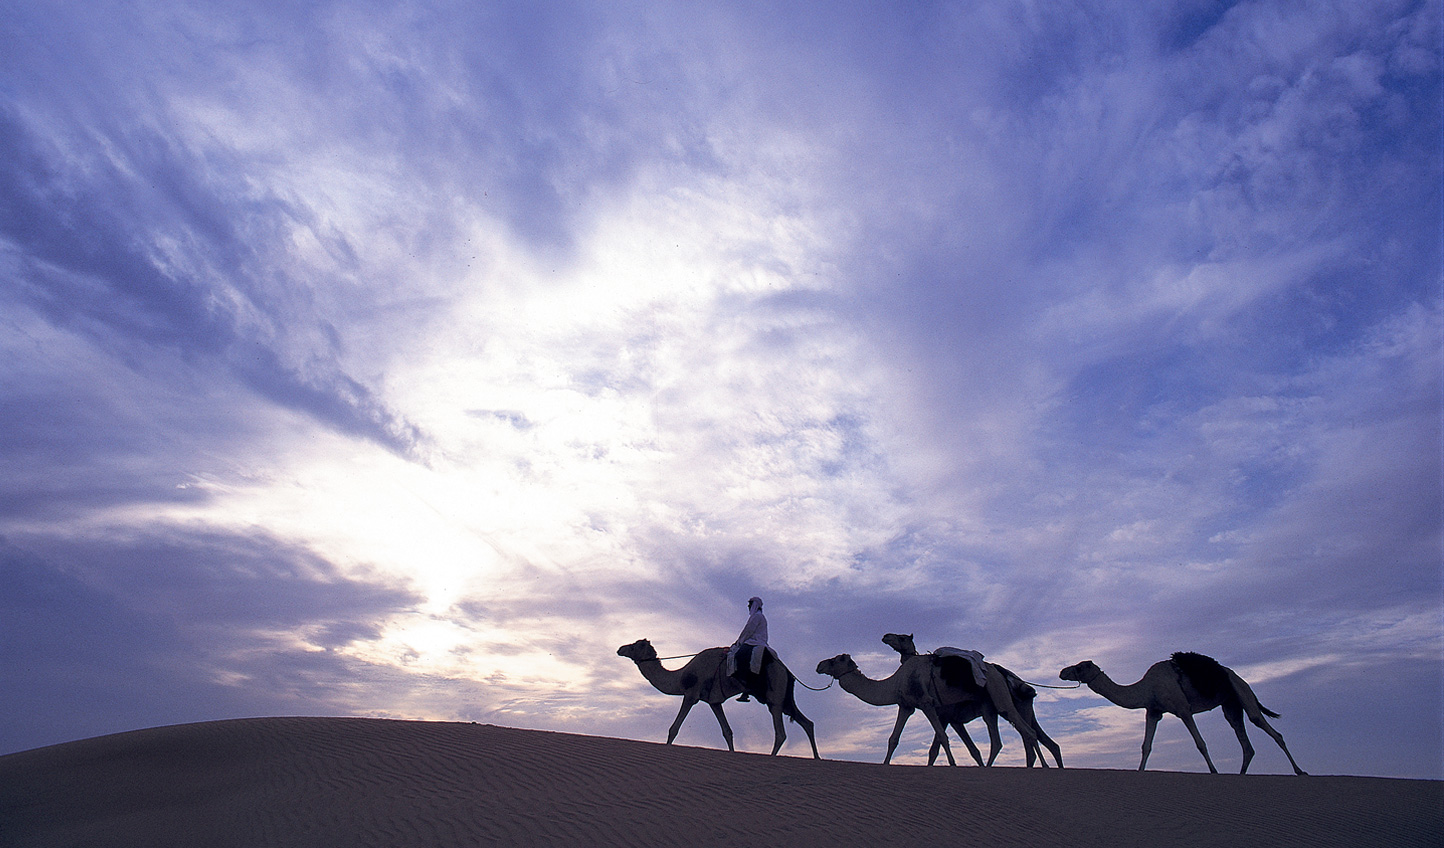 You simply cannot stay in the Dubai desert and not experience a camel trek